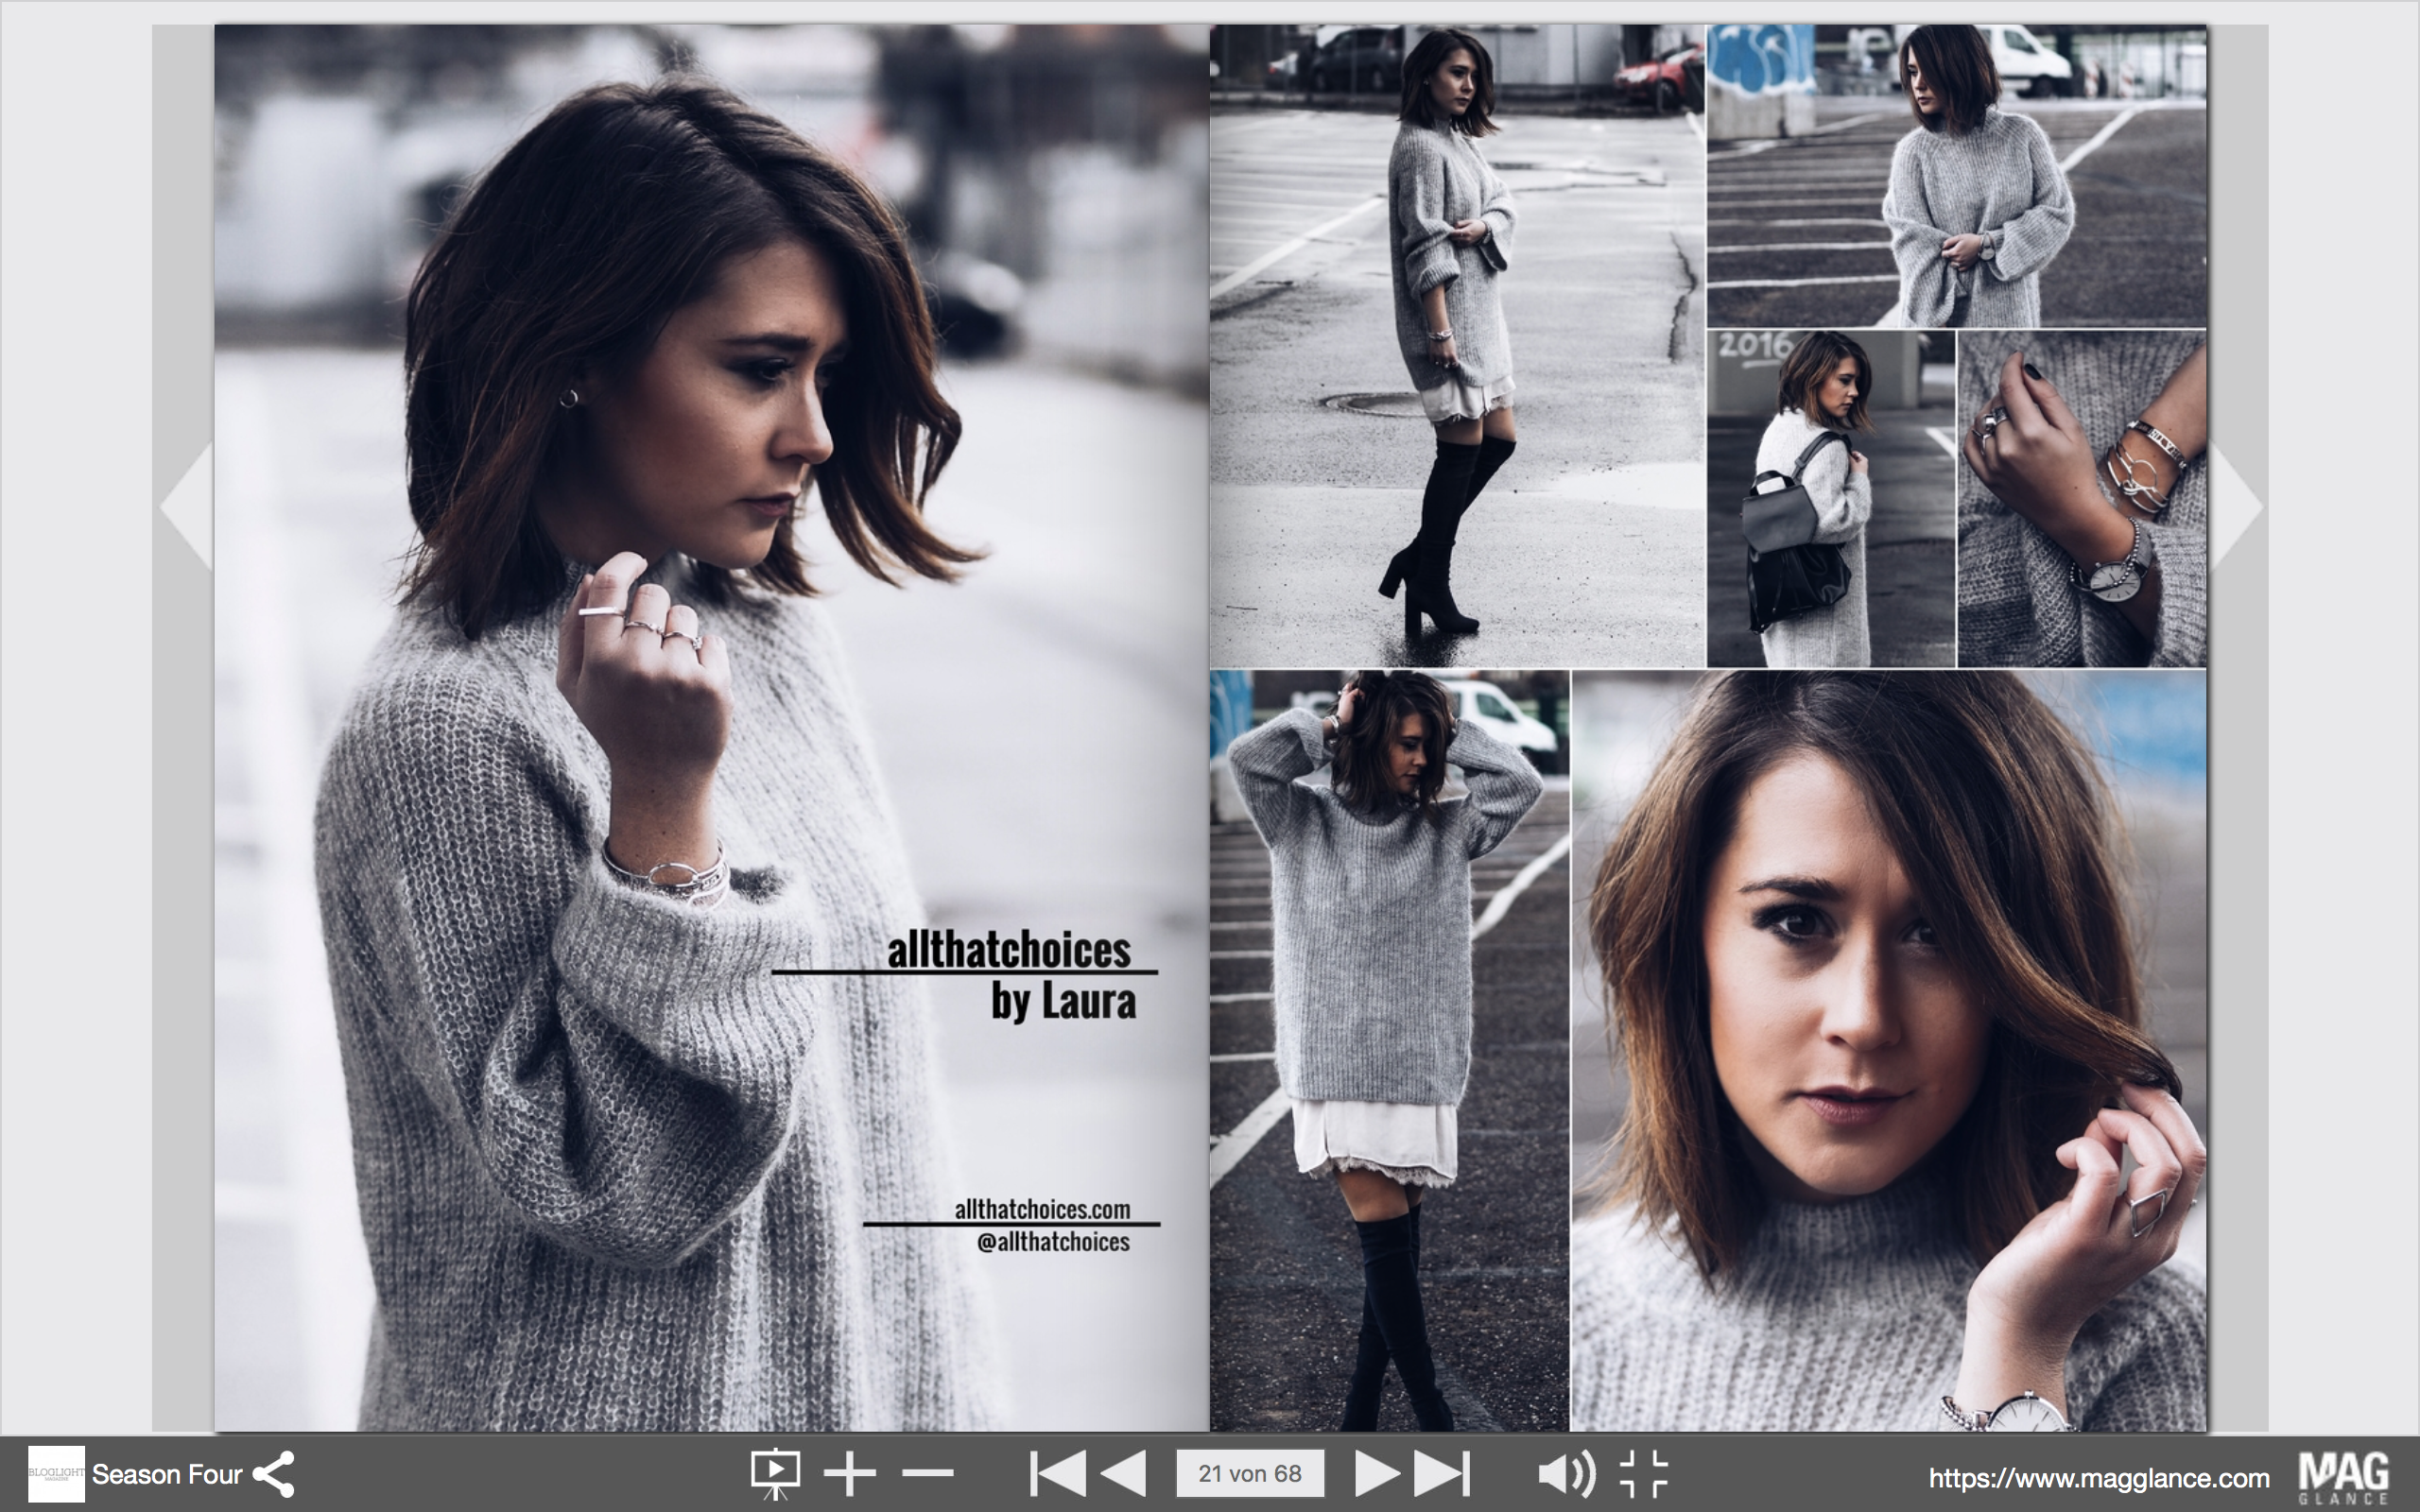 Allthatchoices by Laura Fashionblog Mainz bloglight magazin fashionblogger blog